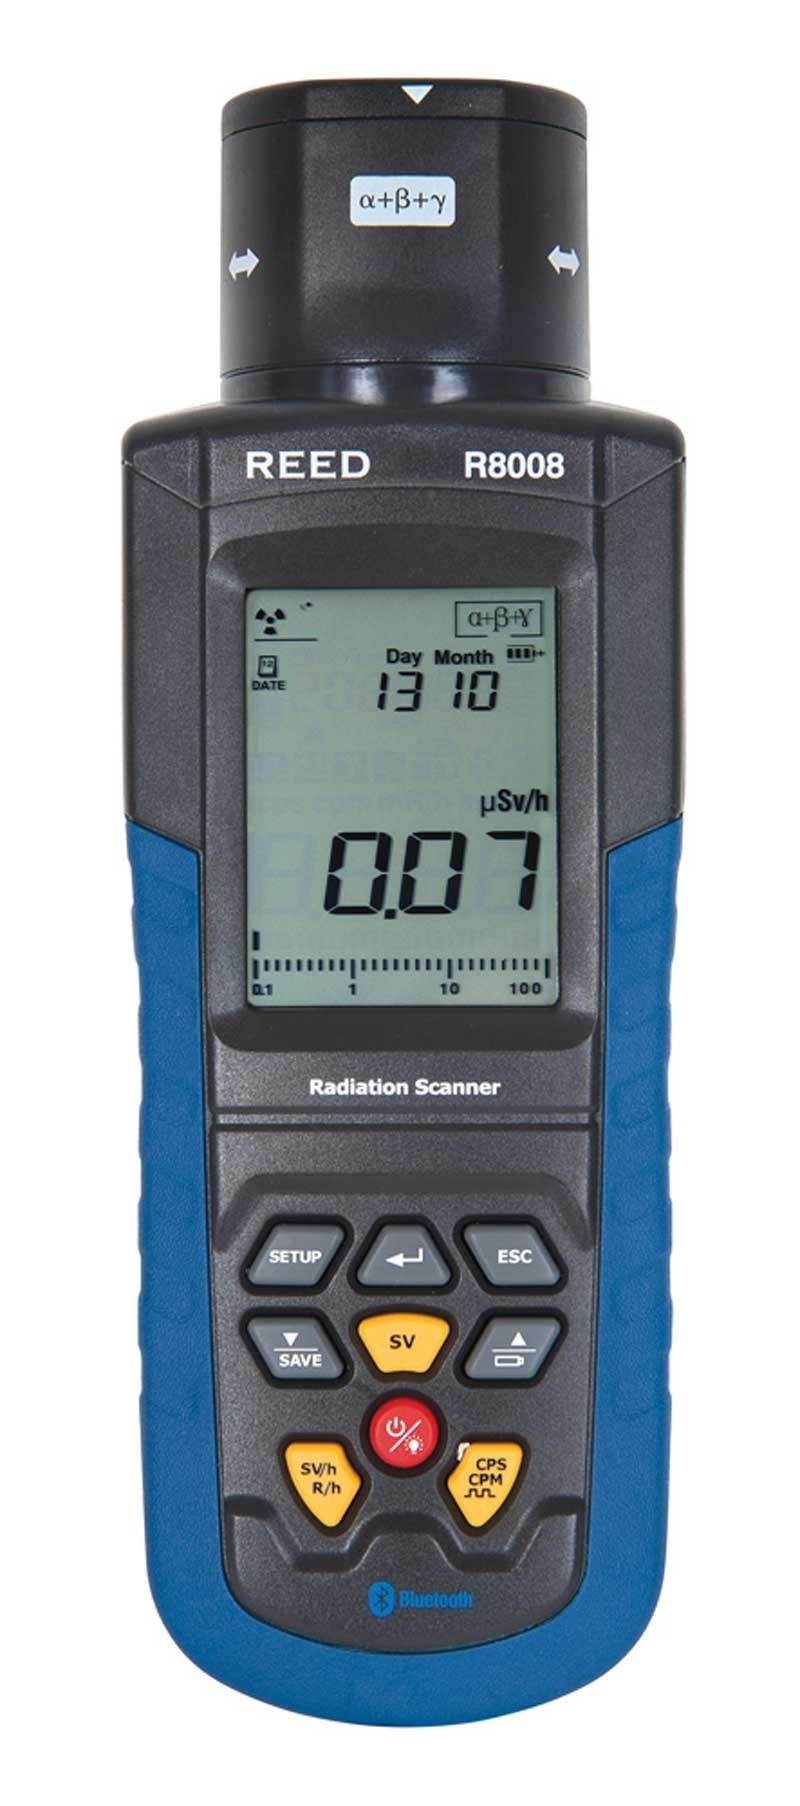 REED R8008 Portable Radiation Meter-